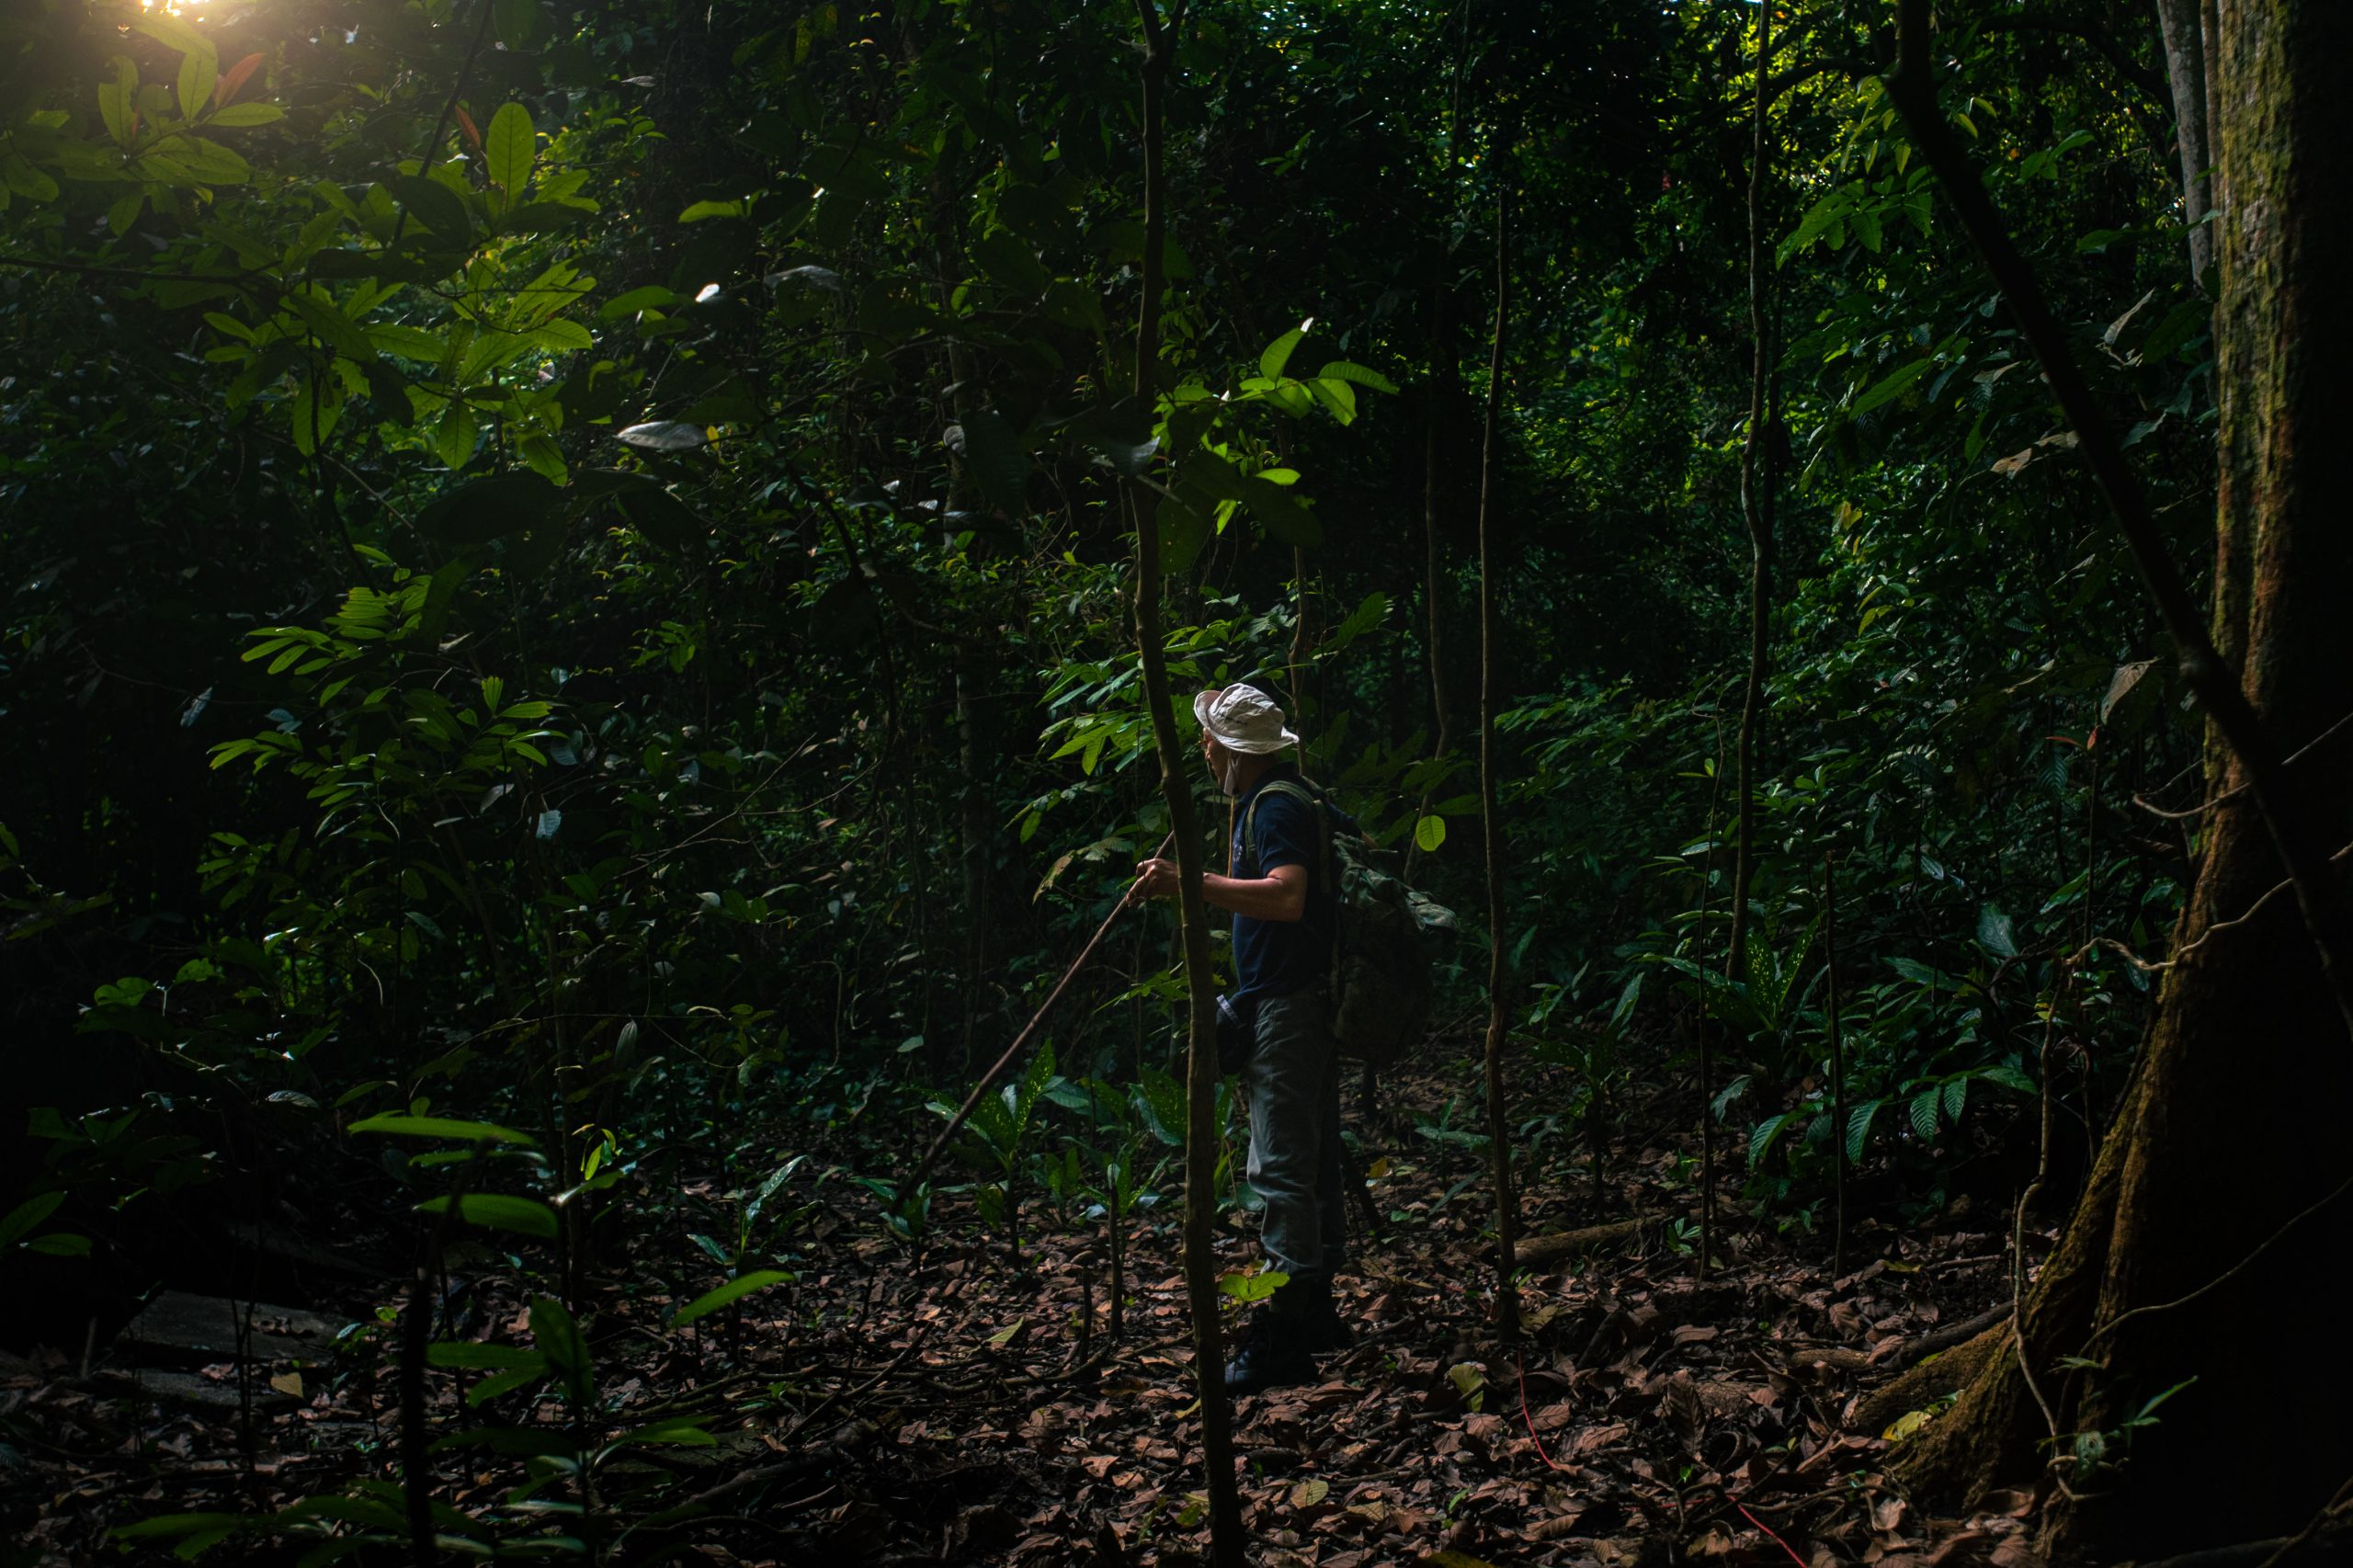 Off The Beaten Track: A Morning In The Woods With A Durian Picker